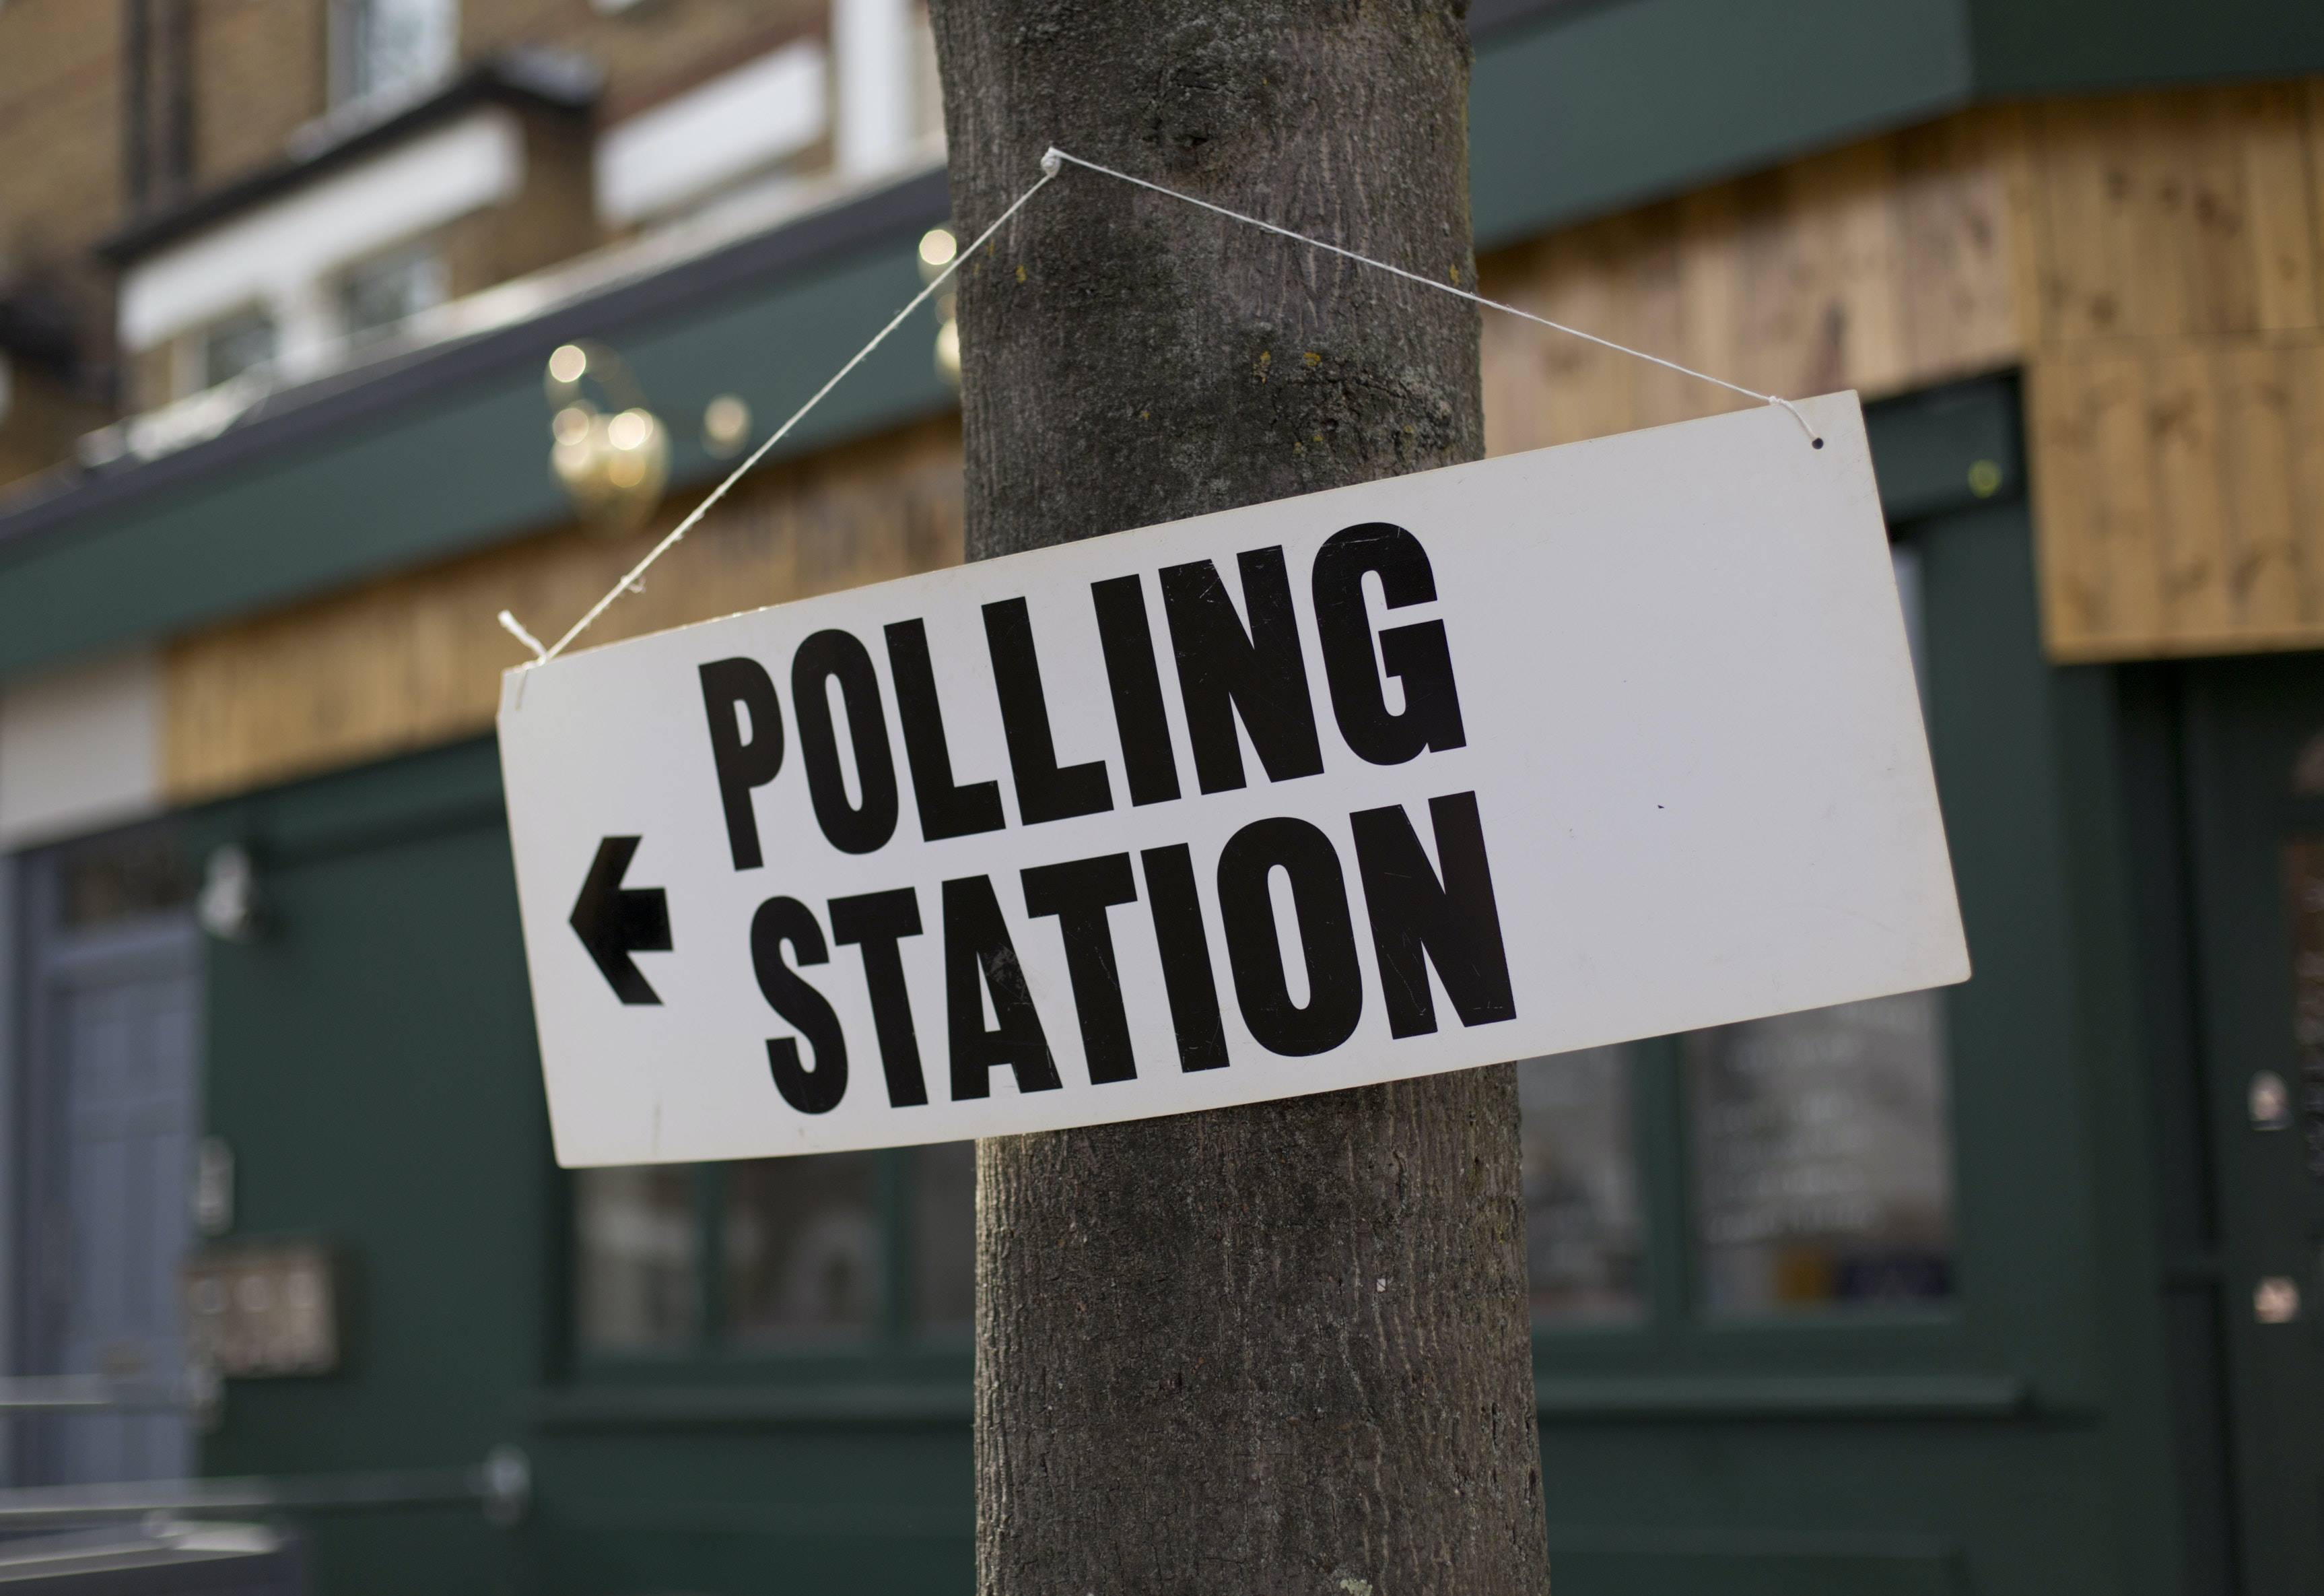 European elections – government was warned voters could be turned away at polling stations